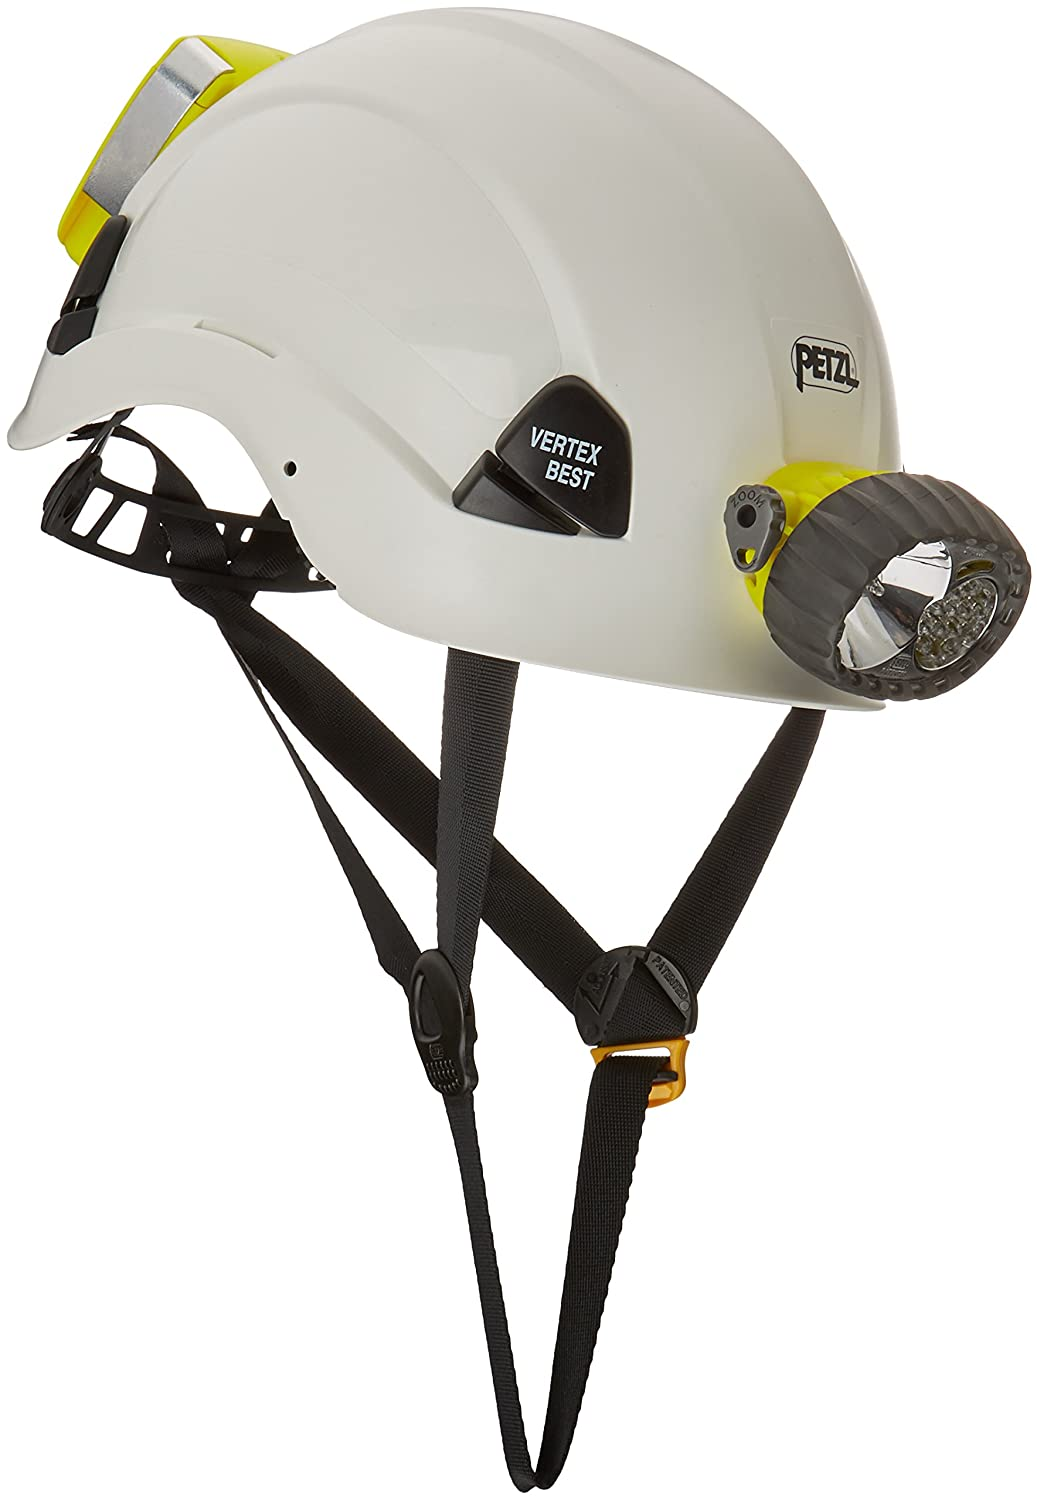 Petzl - Vertex Best Duo Led 14, color 0: Amazon.es: Industria ...